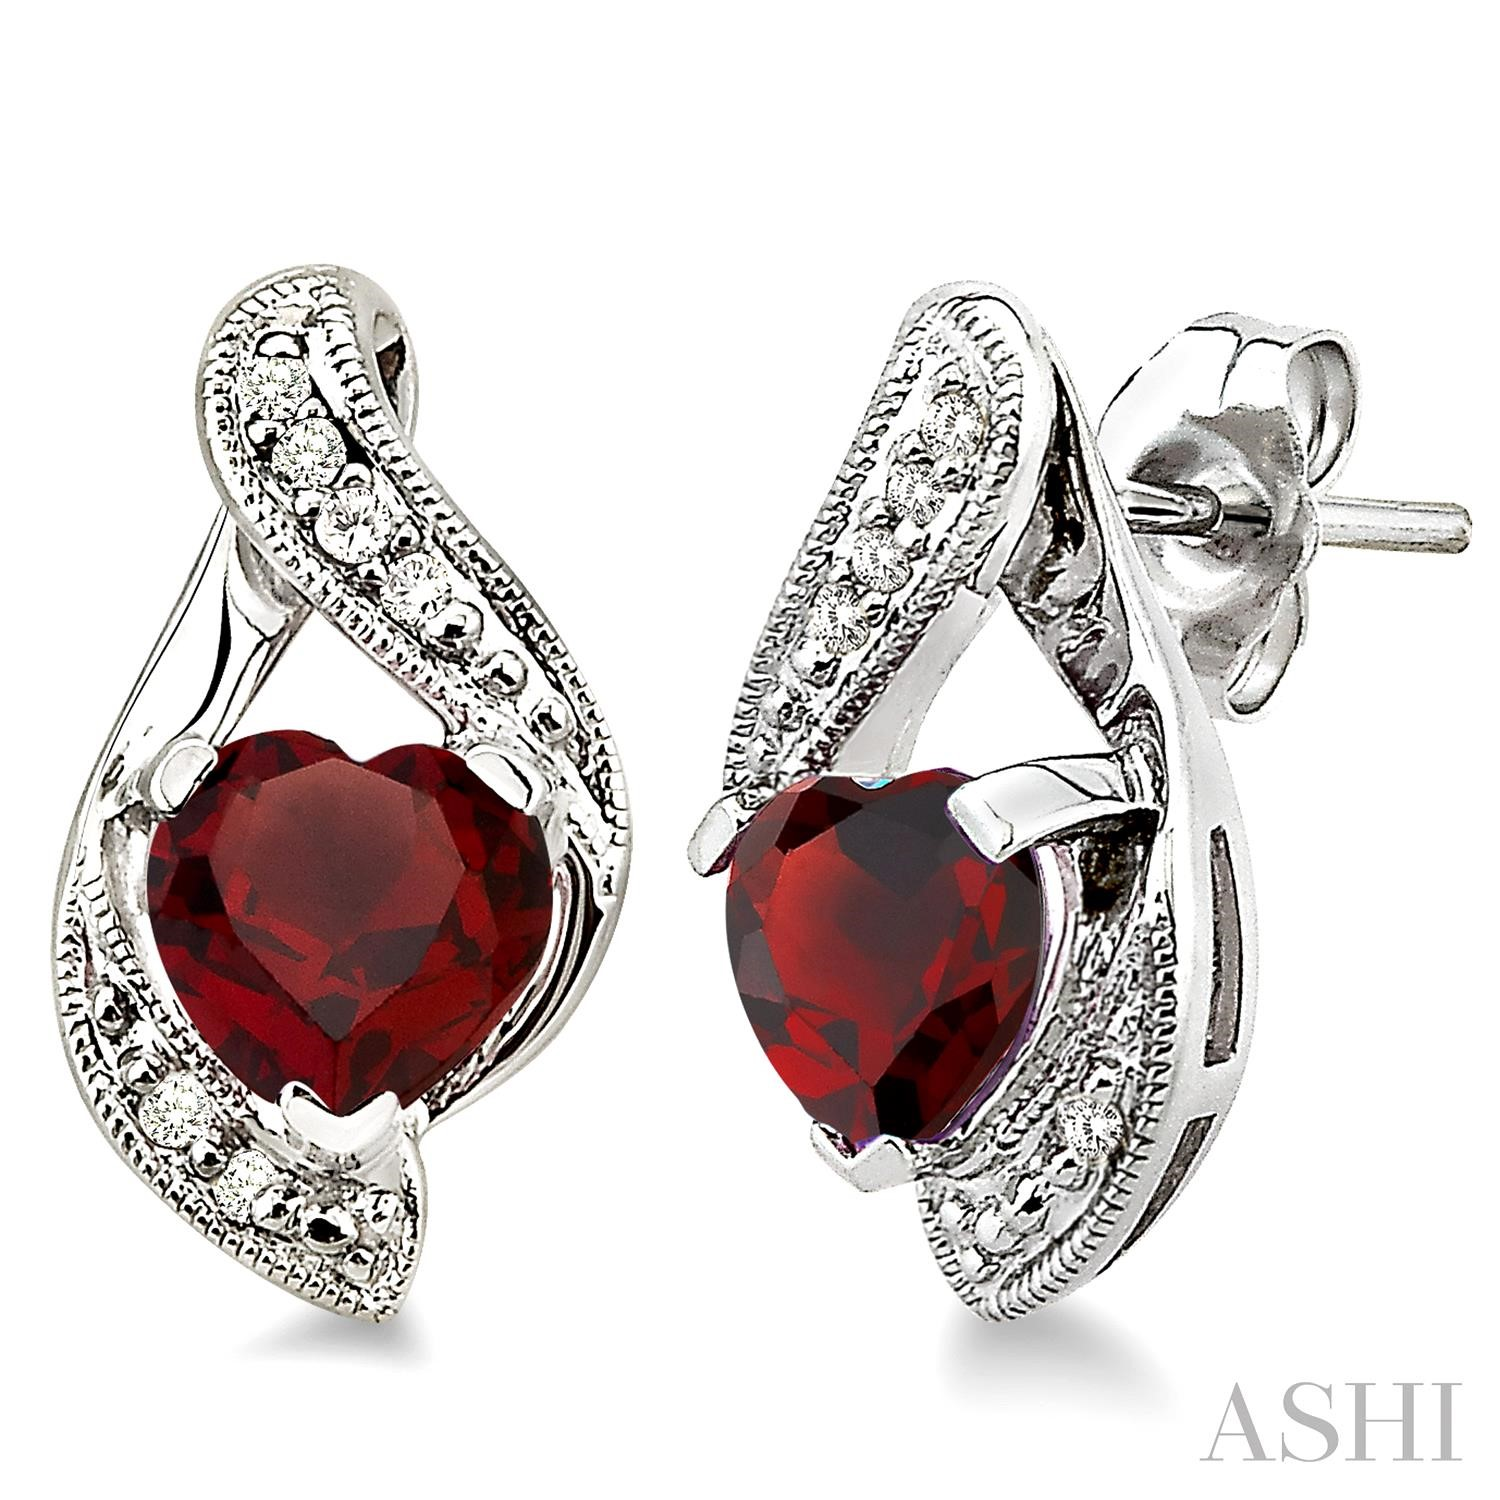 HEART GEMSTONE & DIAMOND EARRINGS